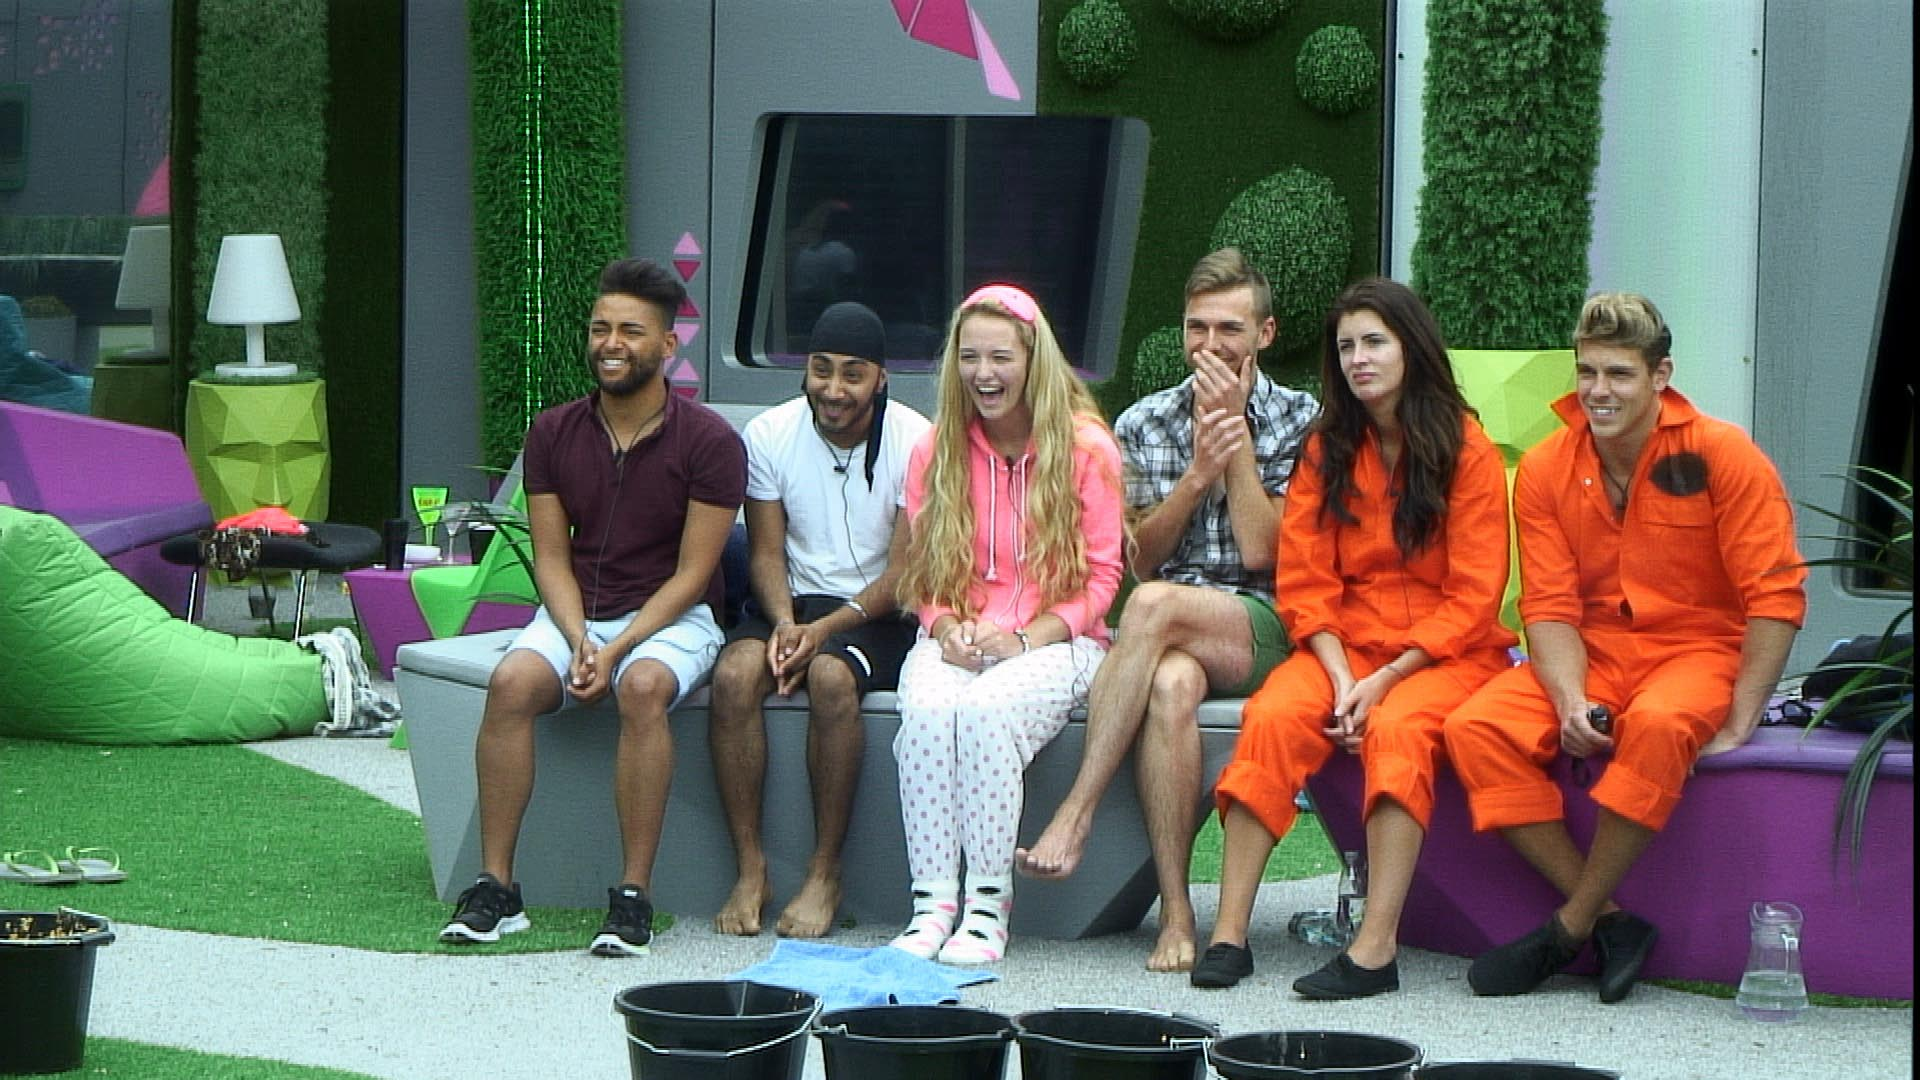 Ofcom rules Big Brother breached guidelines during daytime repeat